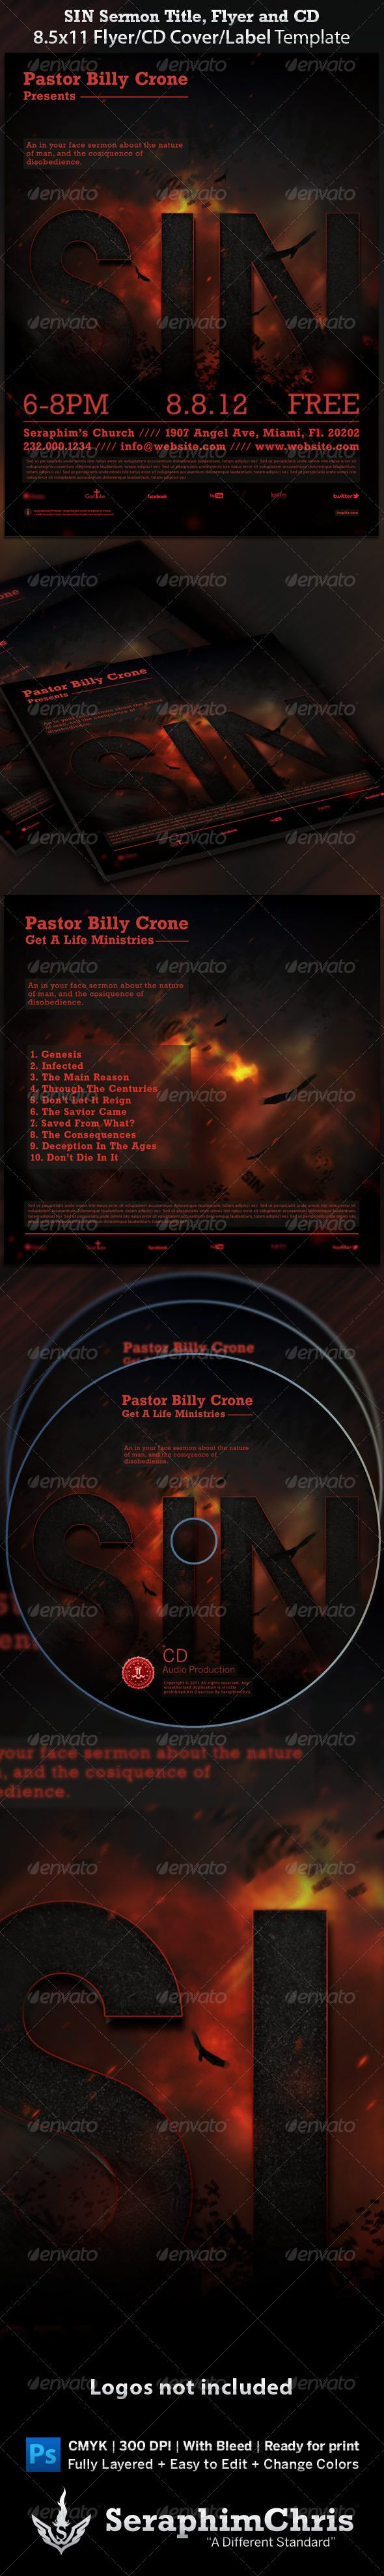 17 best images about print templates the flyer sin sermon title flyer and cd cover template